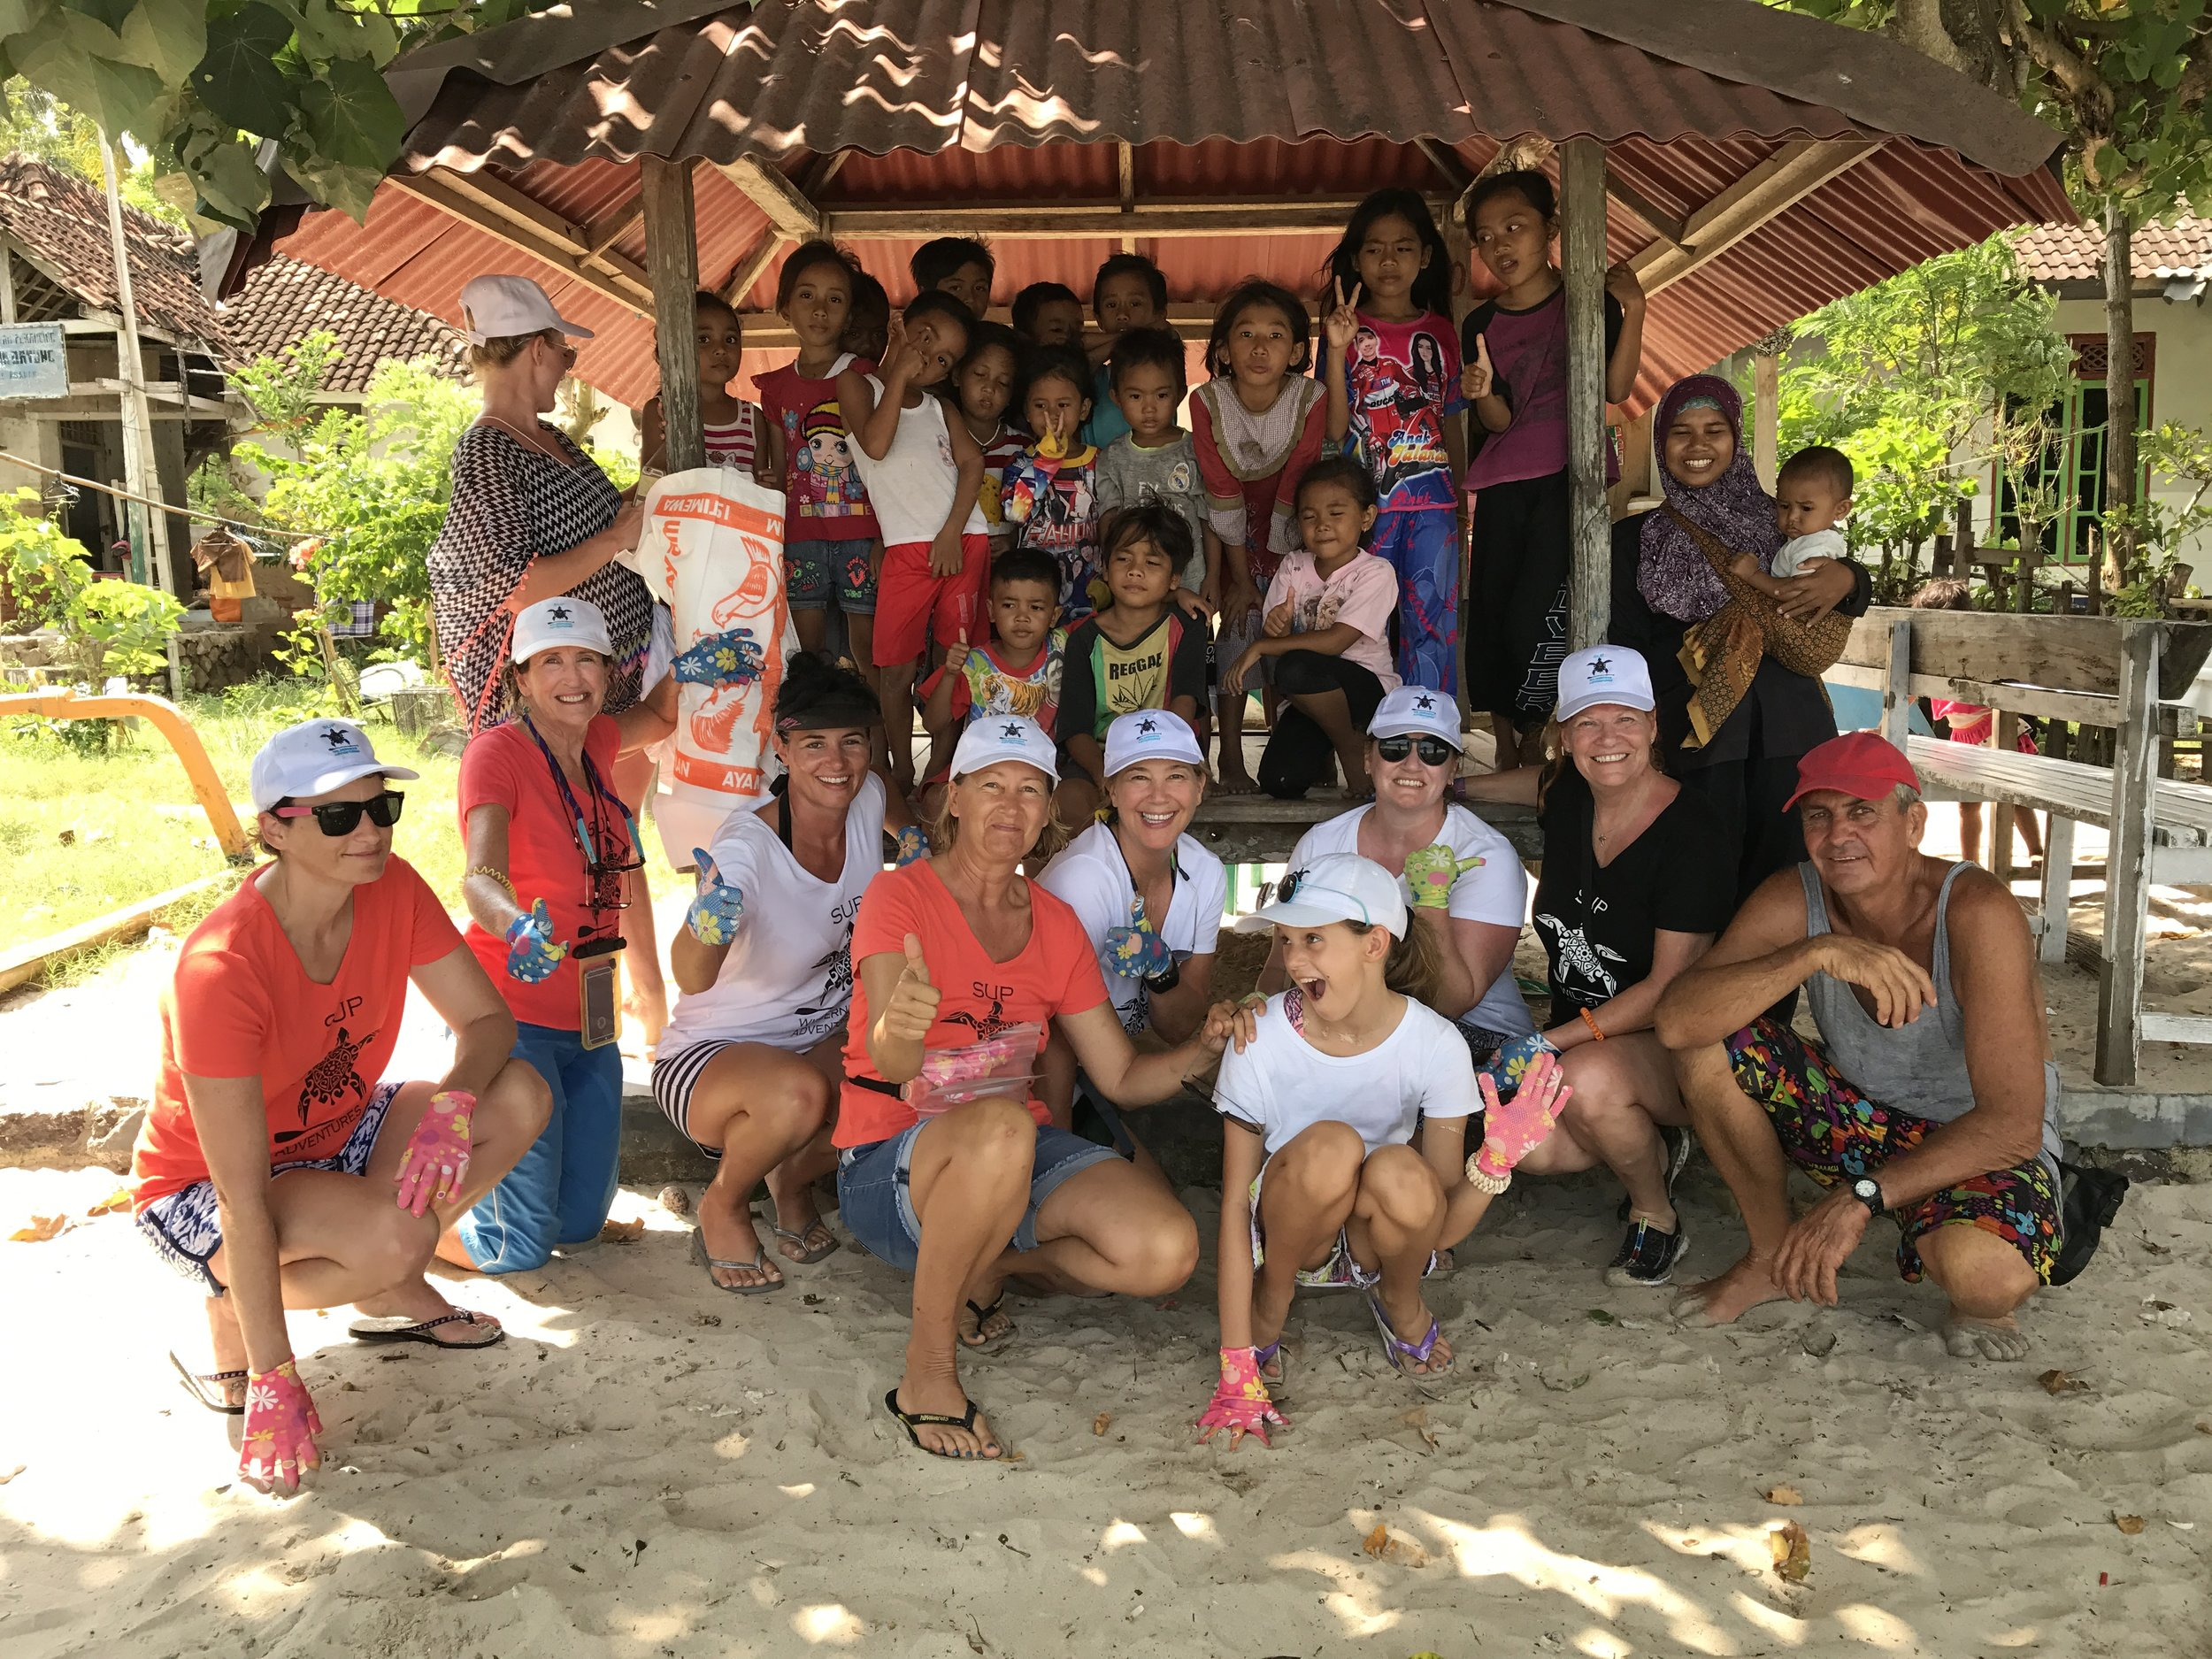 Pic: Volunteers after the beach clean undertaken Pic: Beach clean volunteers, Gili Asaham, Lombok